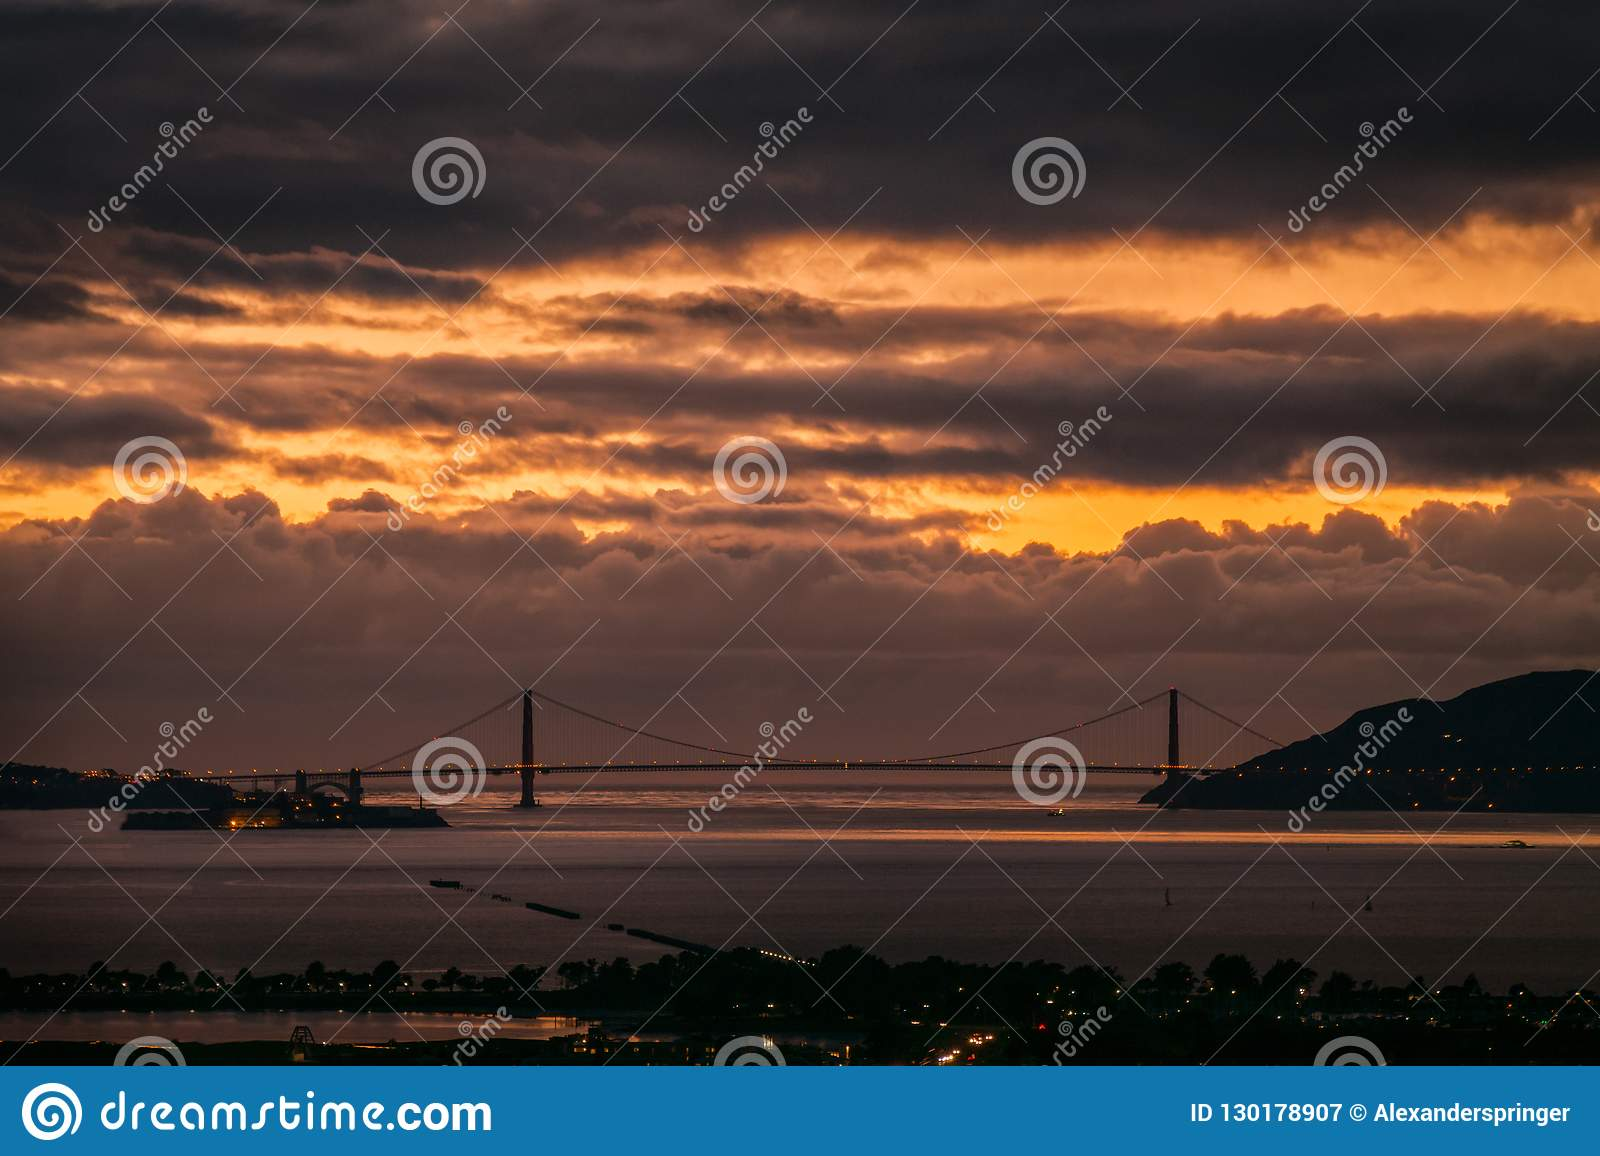 Golden Gate Bridge at sunset with thick moody clouds